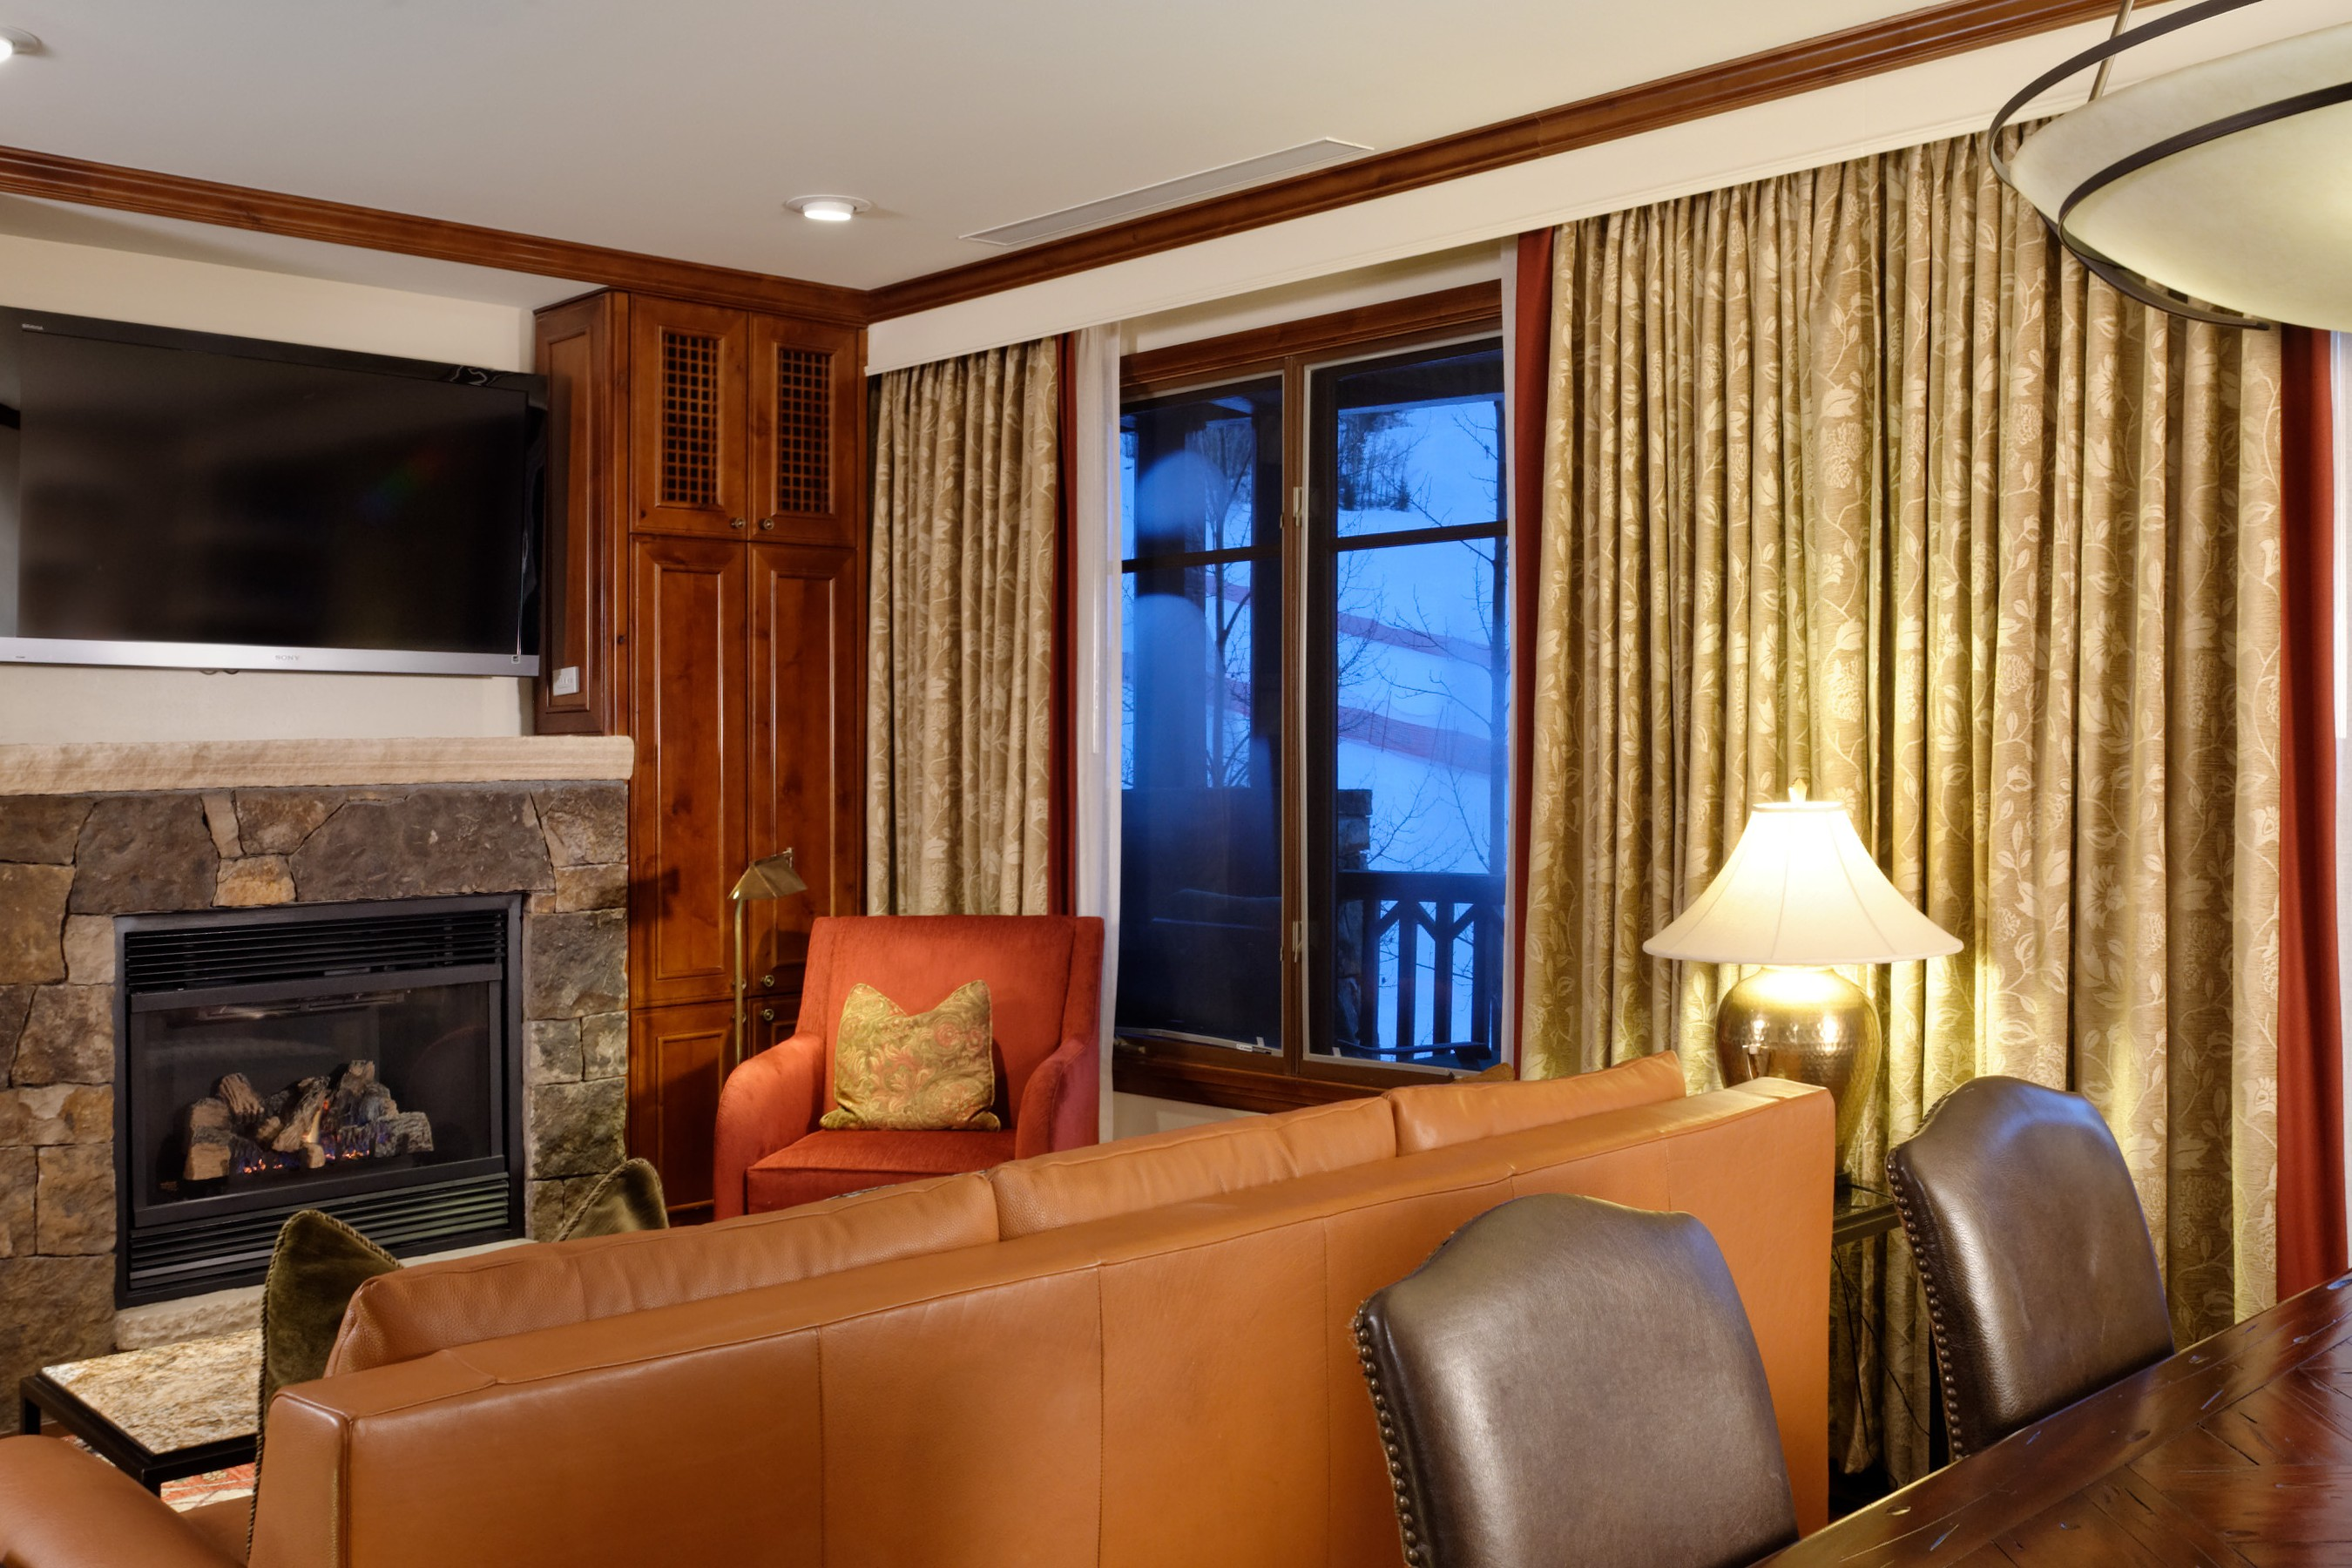 Fractional Ownership for Sale at Ritz-Carlton Club Aspen Highlands Fractional Condo Interest 0075 Prospector Road, 8104, Winter Interest 1, Ritz-Carlton Club Aspen, Colorado, 81611 United States